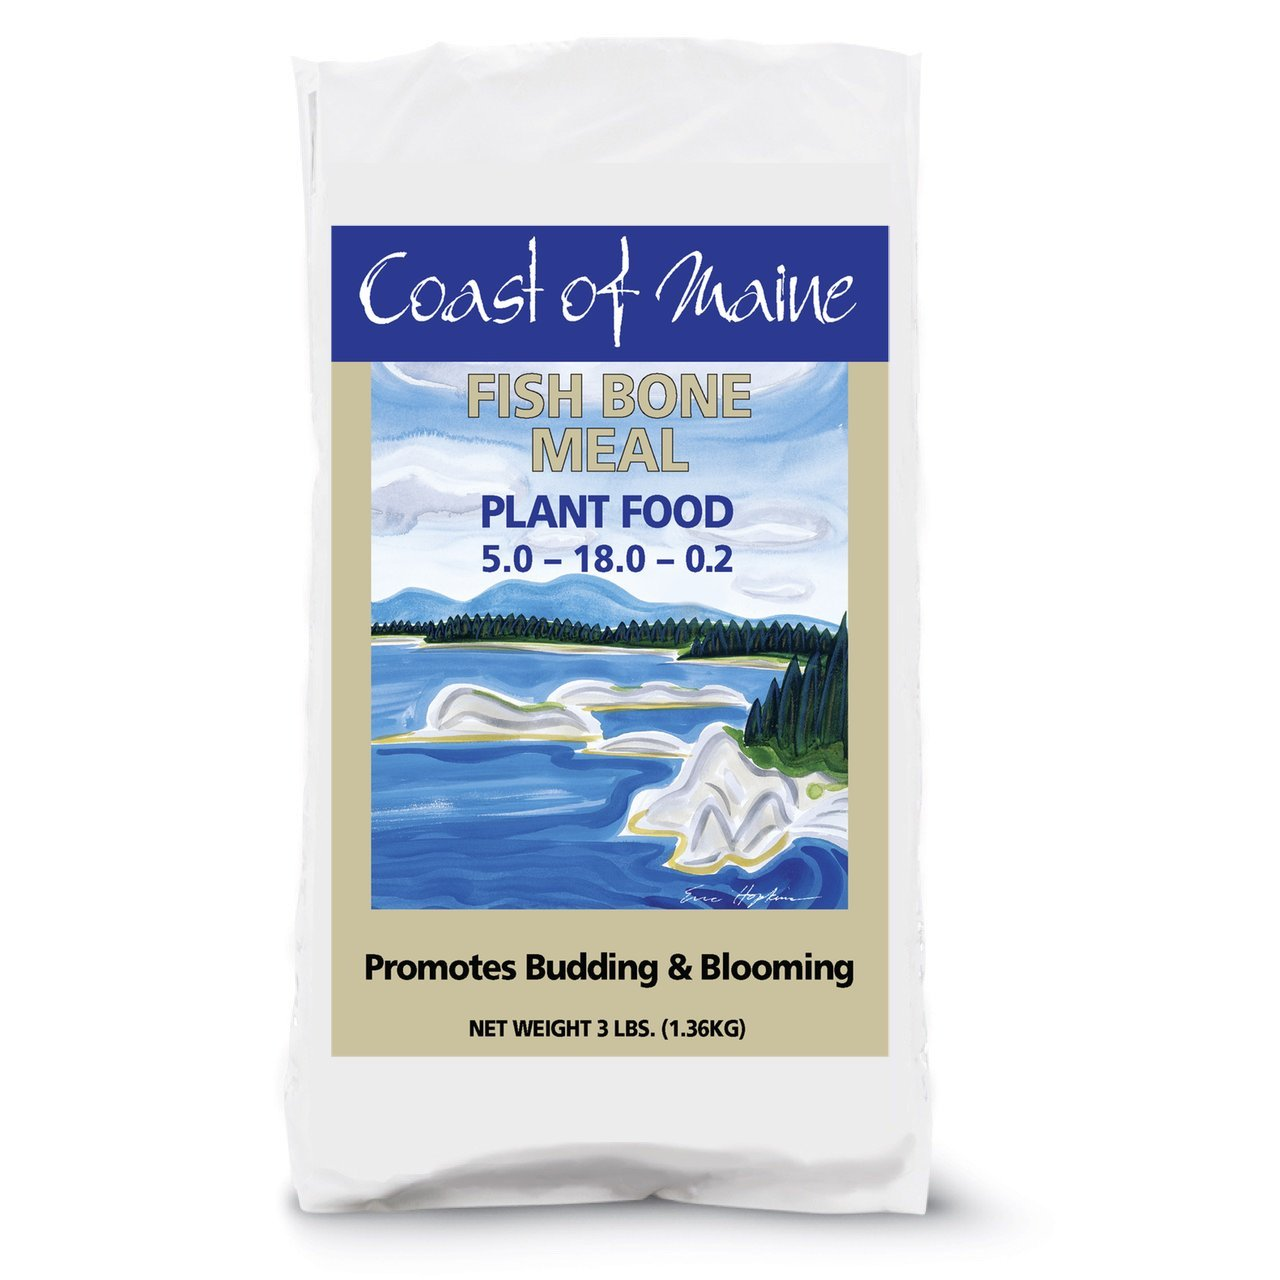 Coast of Maine Fish Bone Meal - Soil Amendment, Budding & Blooming, Calcium, Phosphorus Plant Food Fertilizer 1000g 98% fish collagen powder high purity for functional food